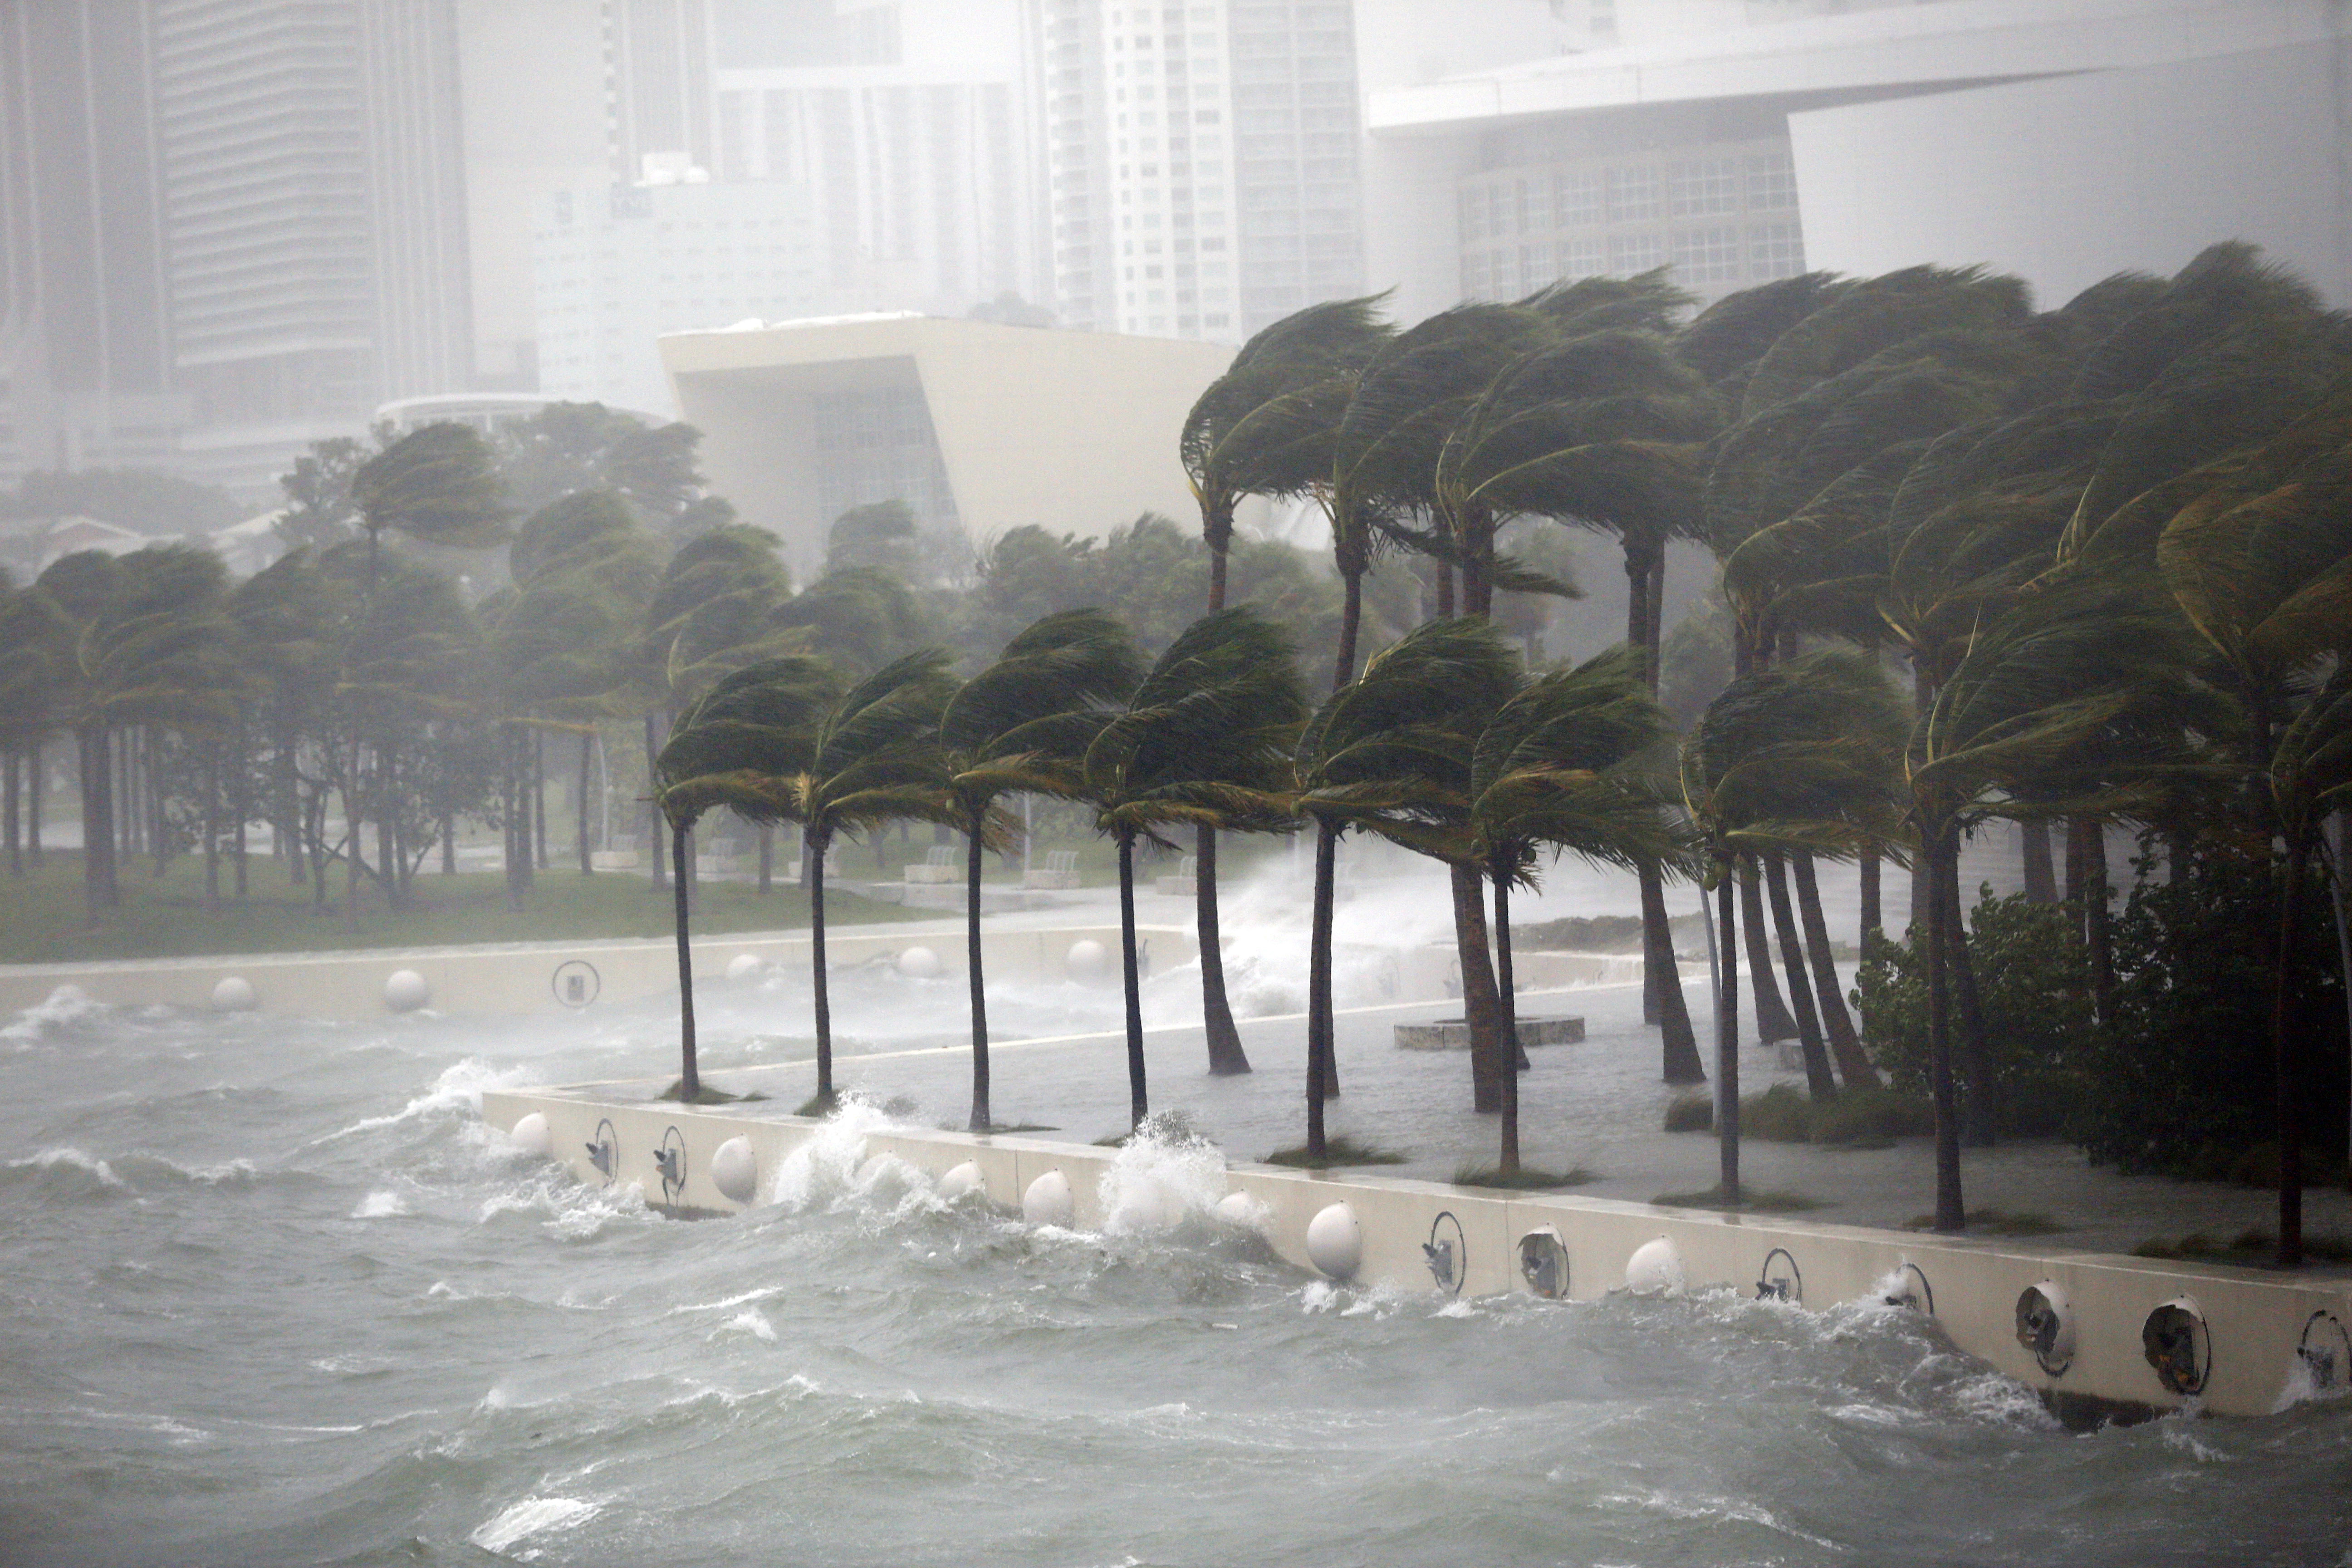 Hurricane Irma hits Biscayne Bay in Miami on Sept. 10, 2017